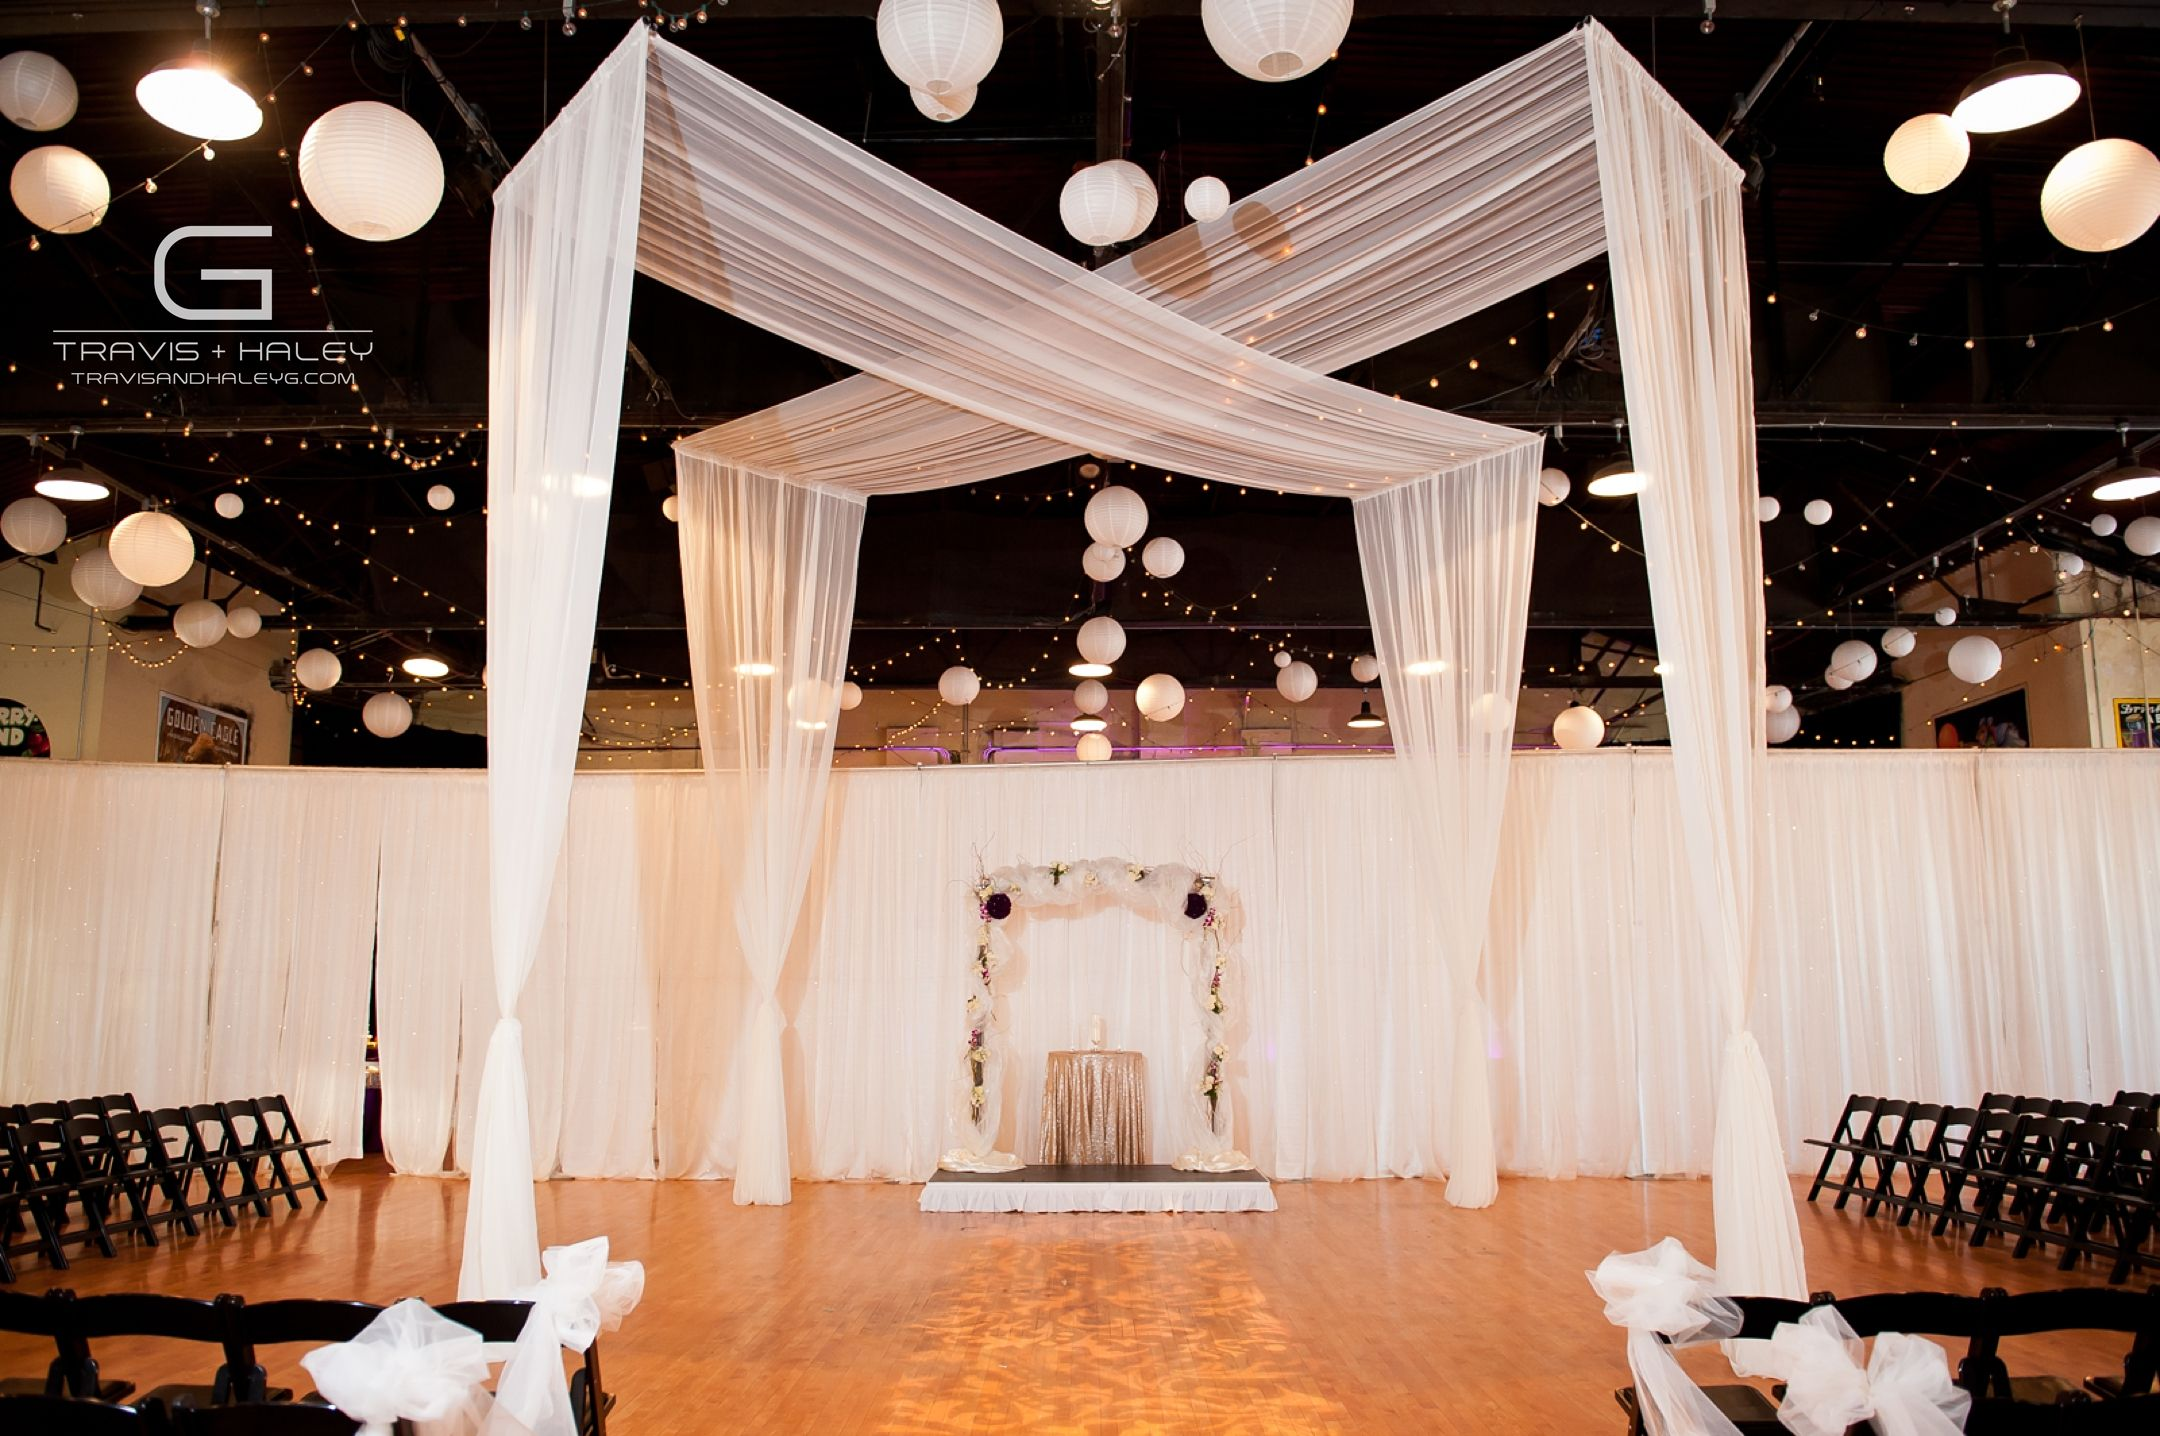 hang lanterns purple were and image drapes how detail up floor to for events drape ceiling lighting we pin